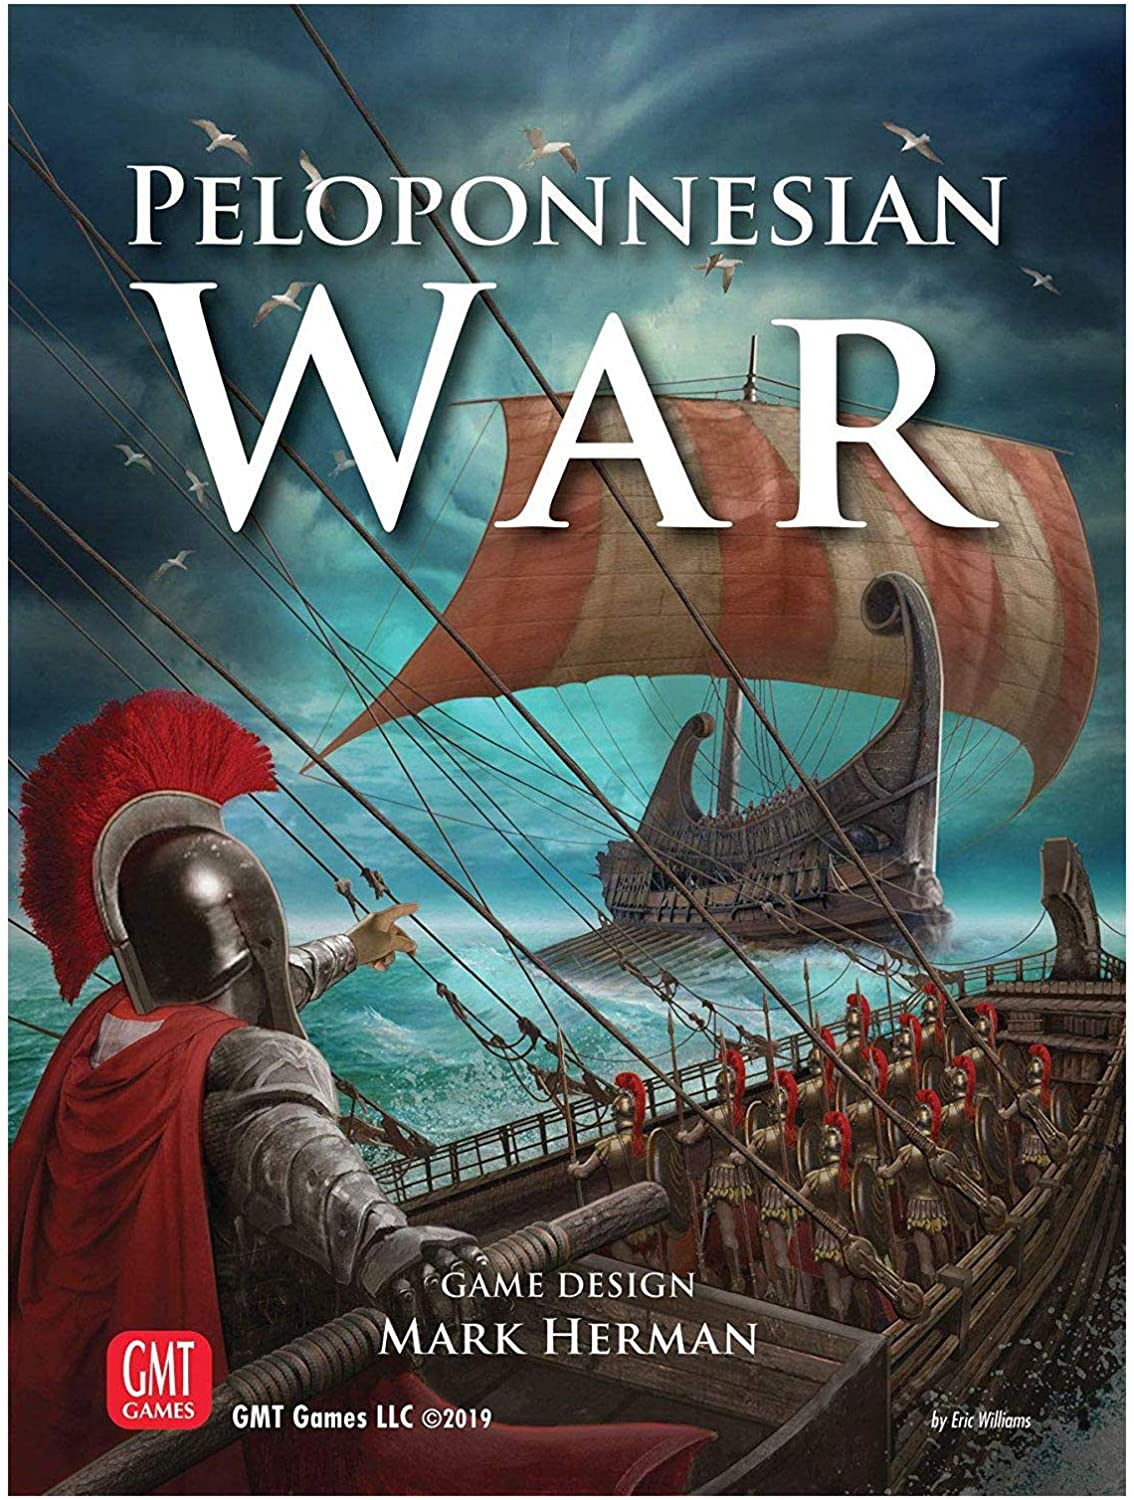 The Peloponnesian War - try saying that after a few sherries